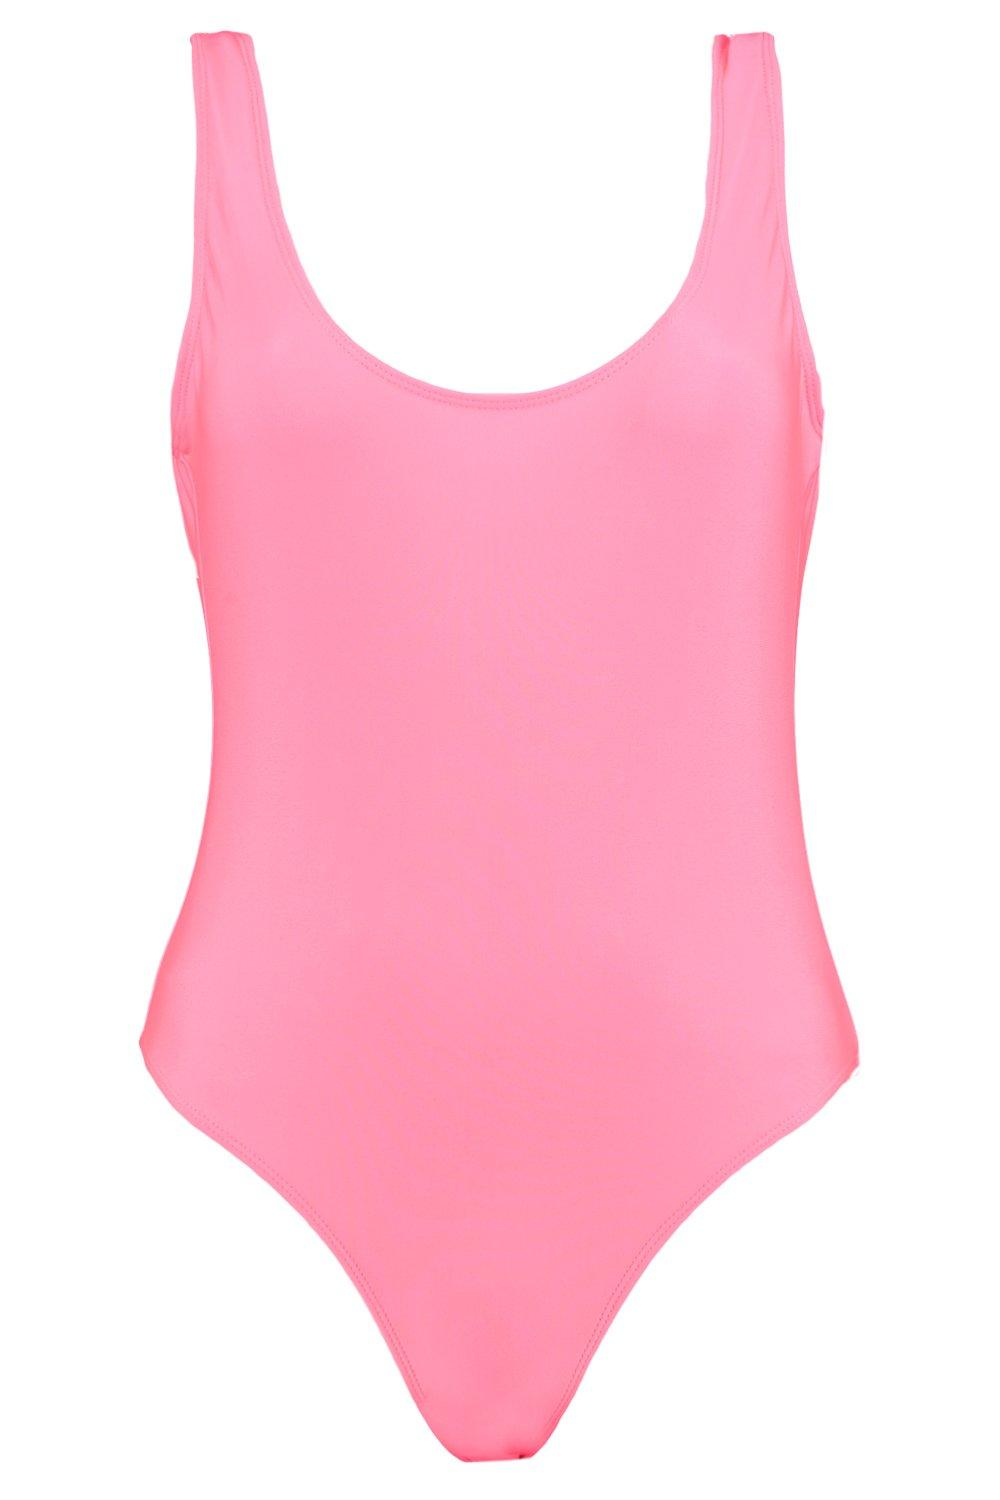 Back Scoop coral Scoop Swimsuit coral Swimsuit Swimsuit Scoop Back Back coral Back Swimsuit Scoop coral Scoop Back FAxpqnq